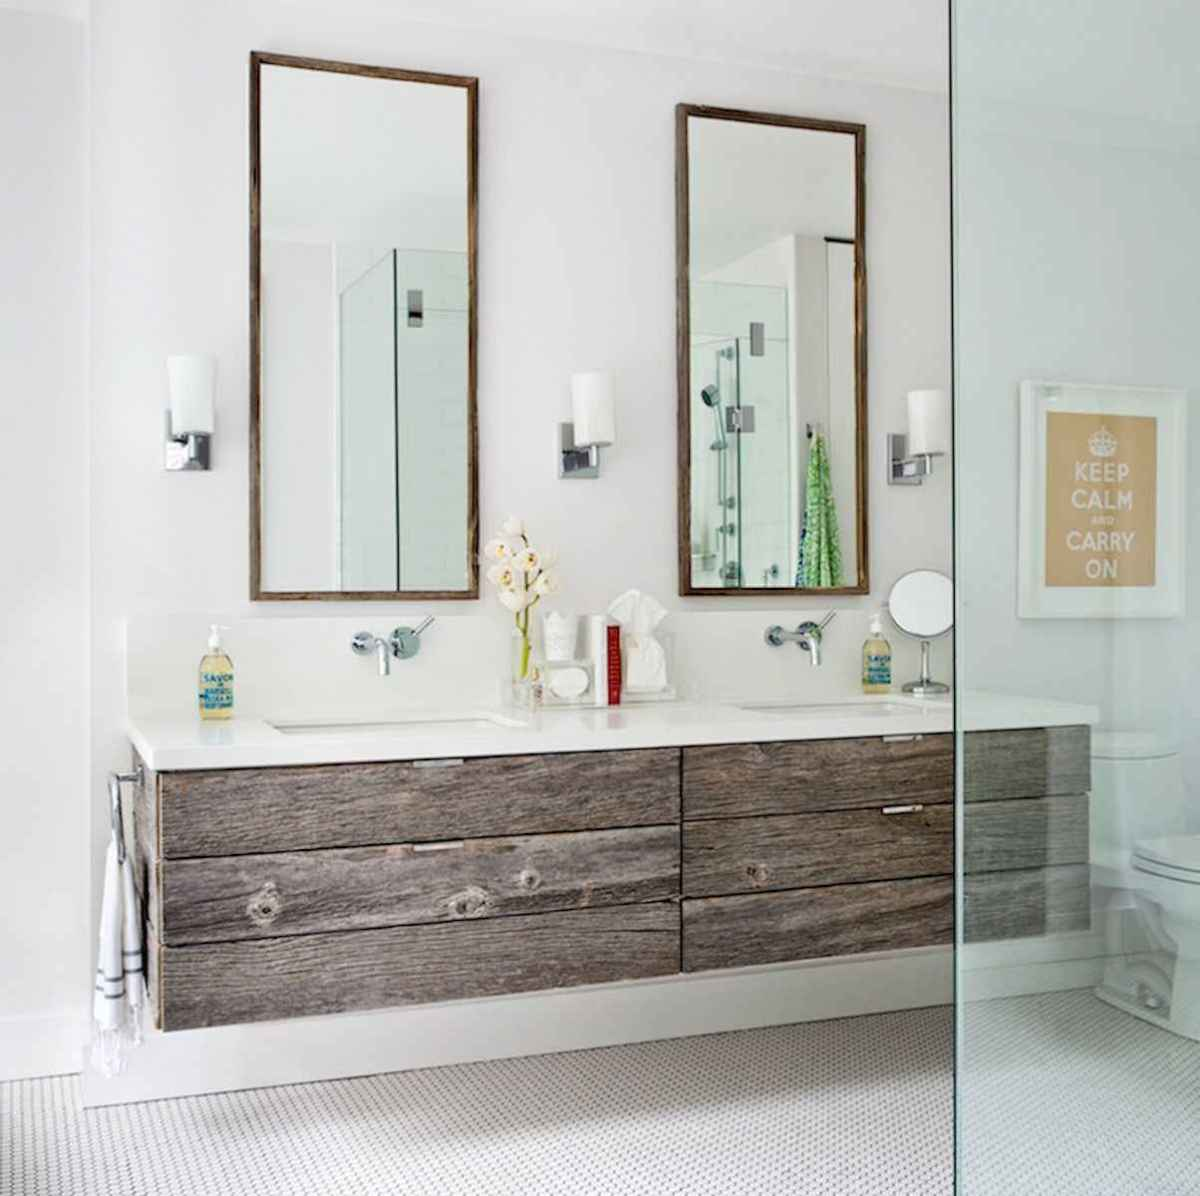 70 modern bathroom cabinets ideas decorations and remodel (38 ...